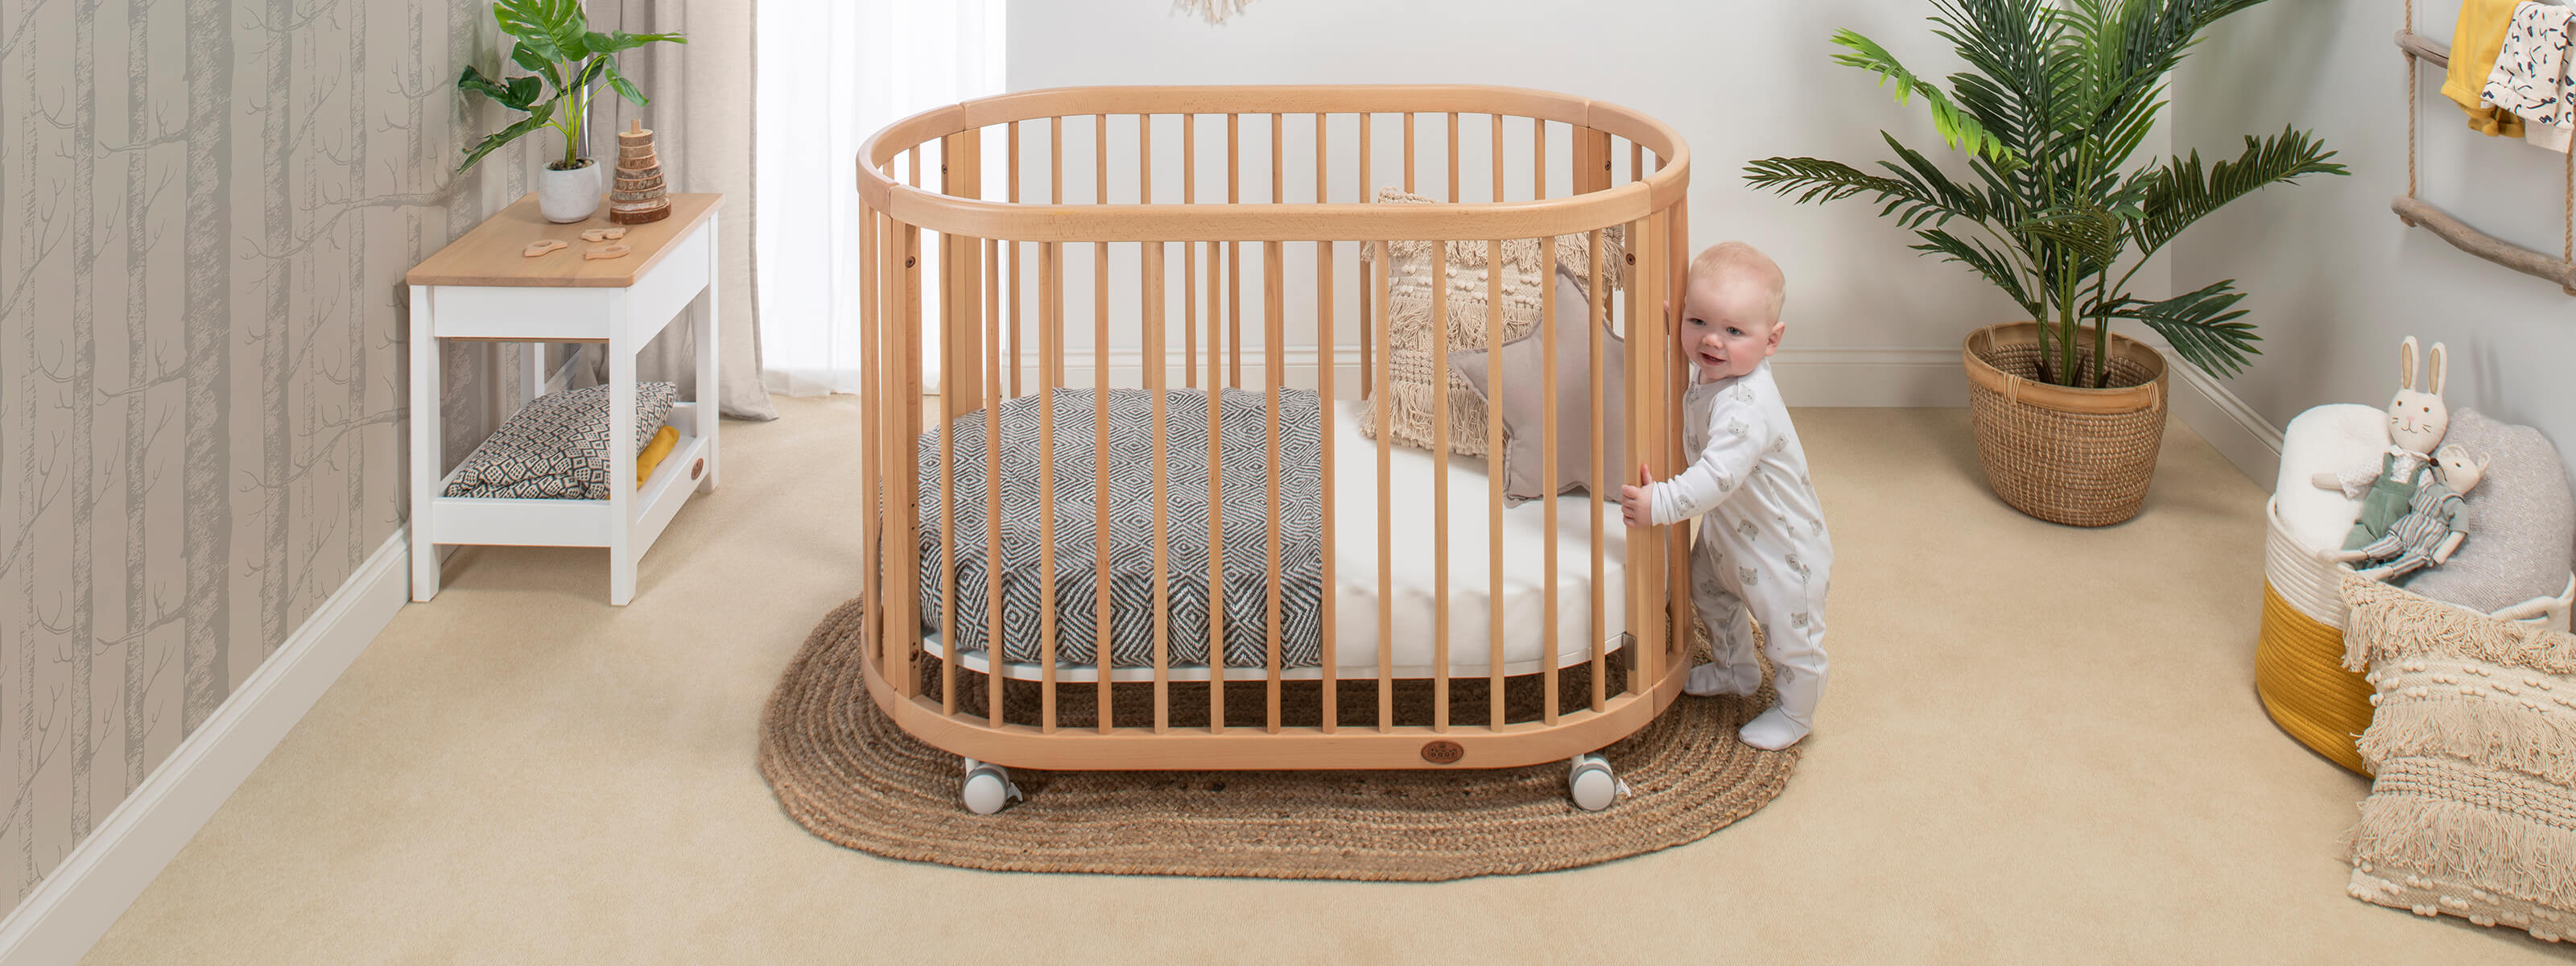 Product_Page_Lifestyles_1600_x_600_Oasis_Oval_Cot_Beech_with_Baby_FORWEB__2x